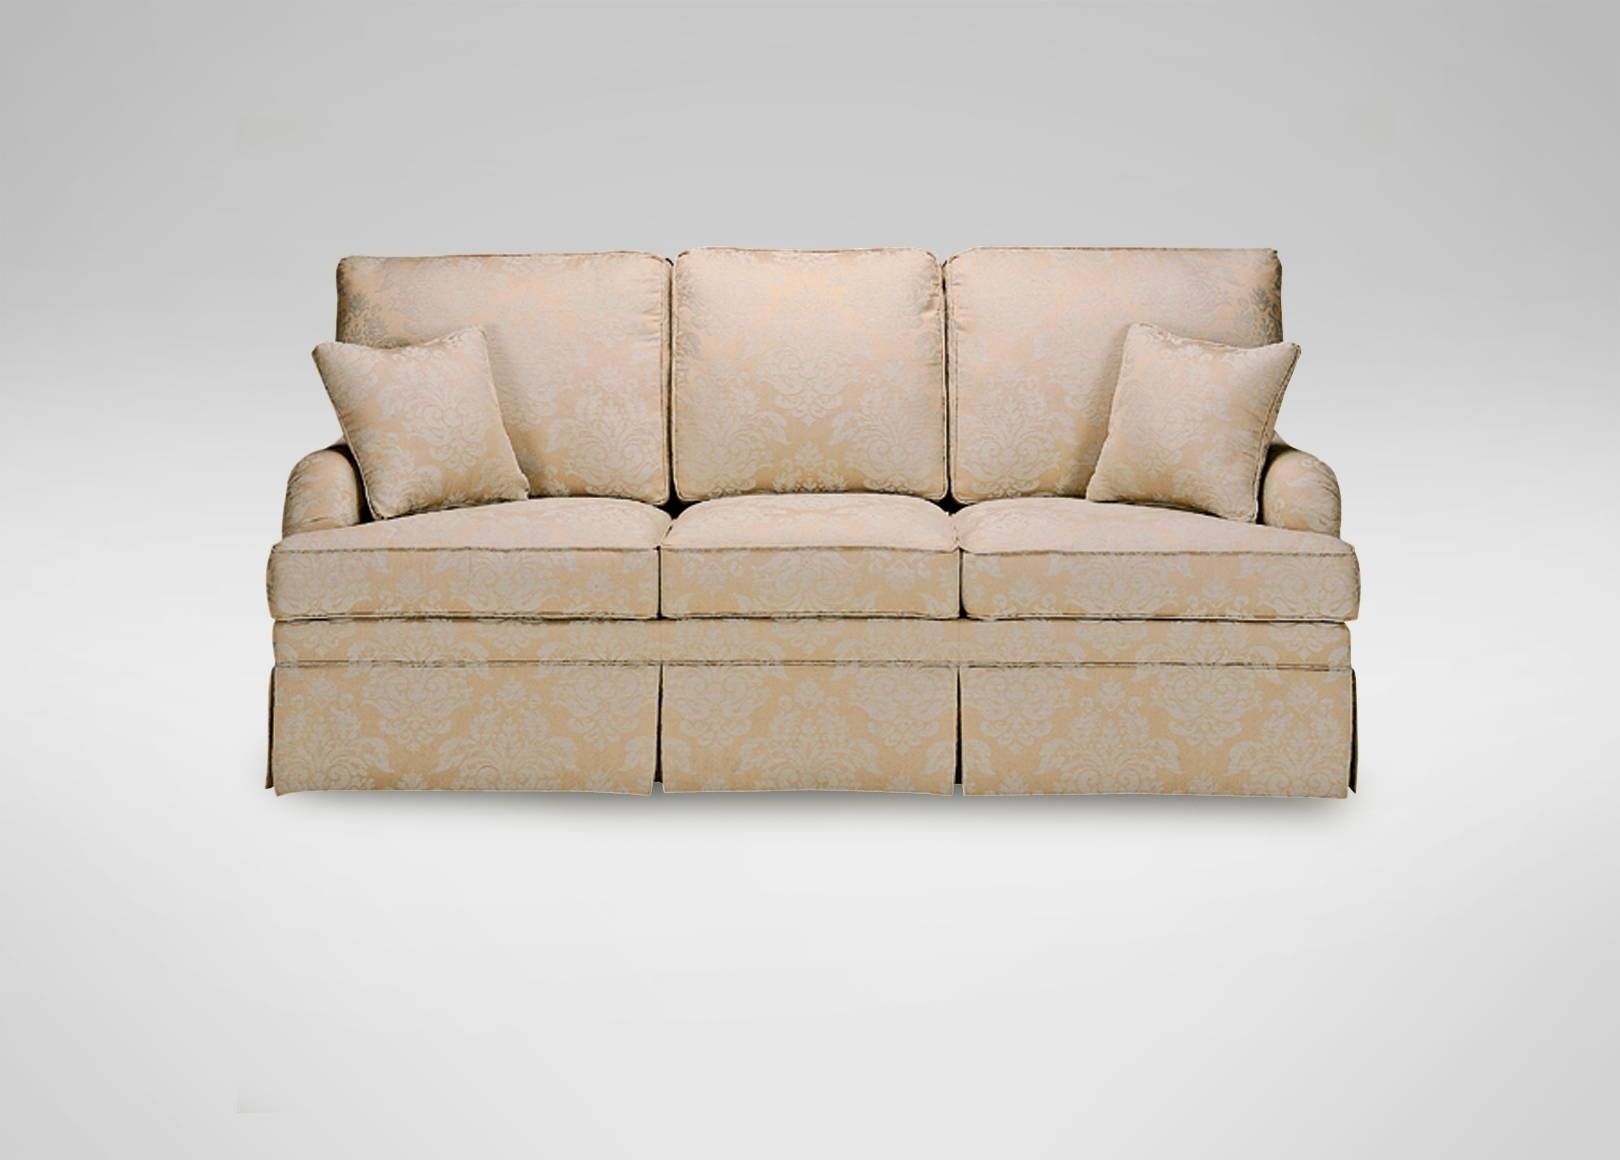 Sofas: Sectional Sofas Ethan Allen | Ethan Allen Sofa Bed with Ethan Allen Whitney Sofas (Image 13 of 15)